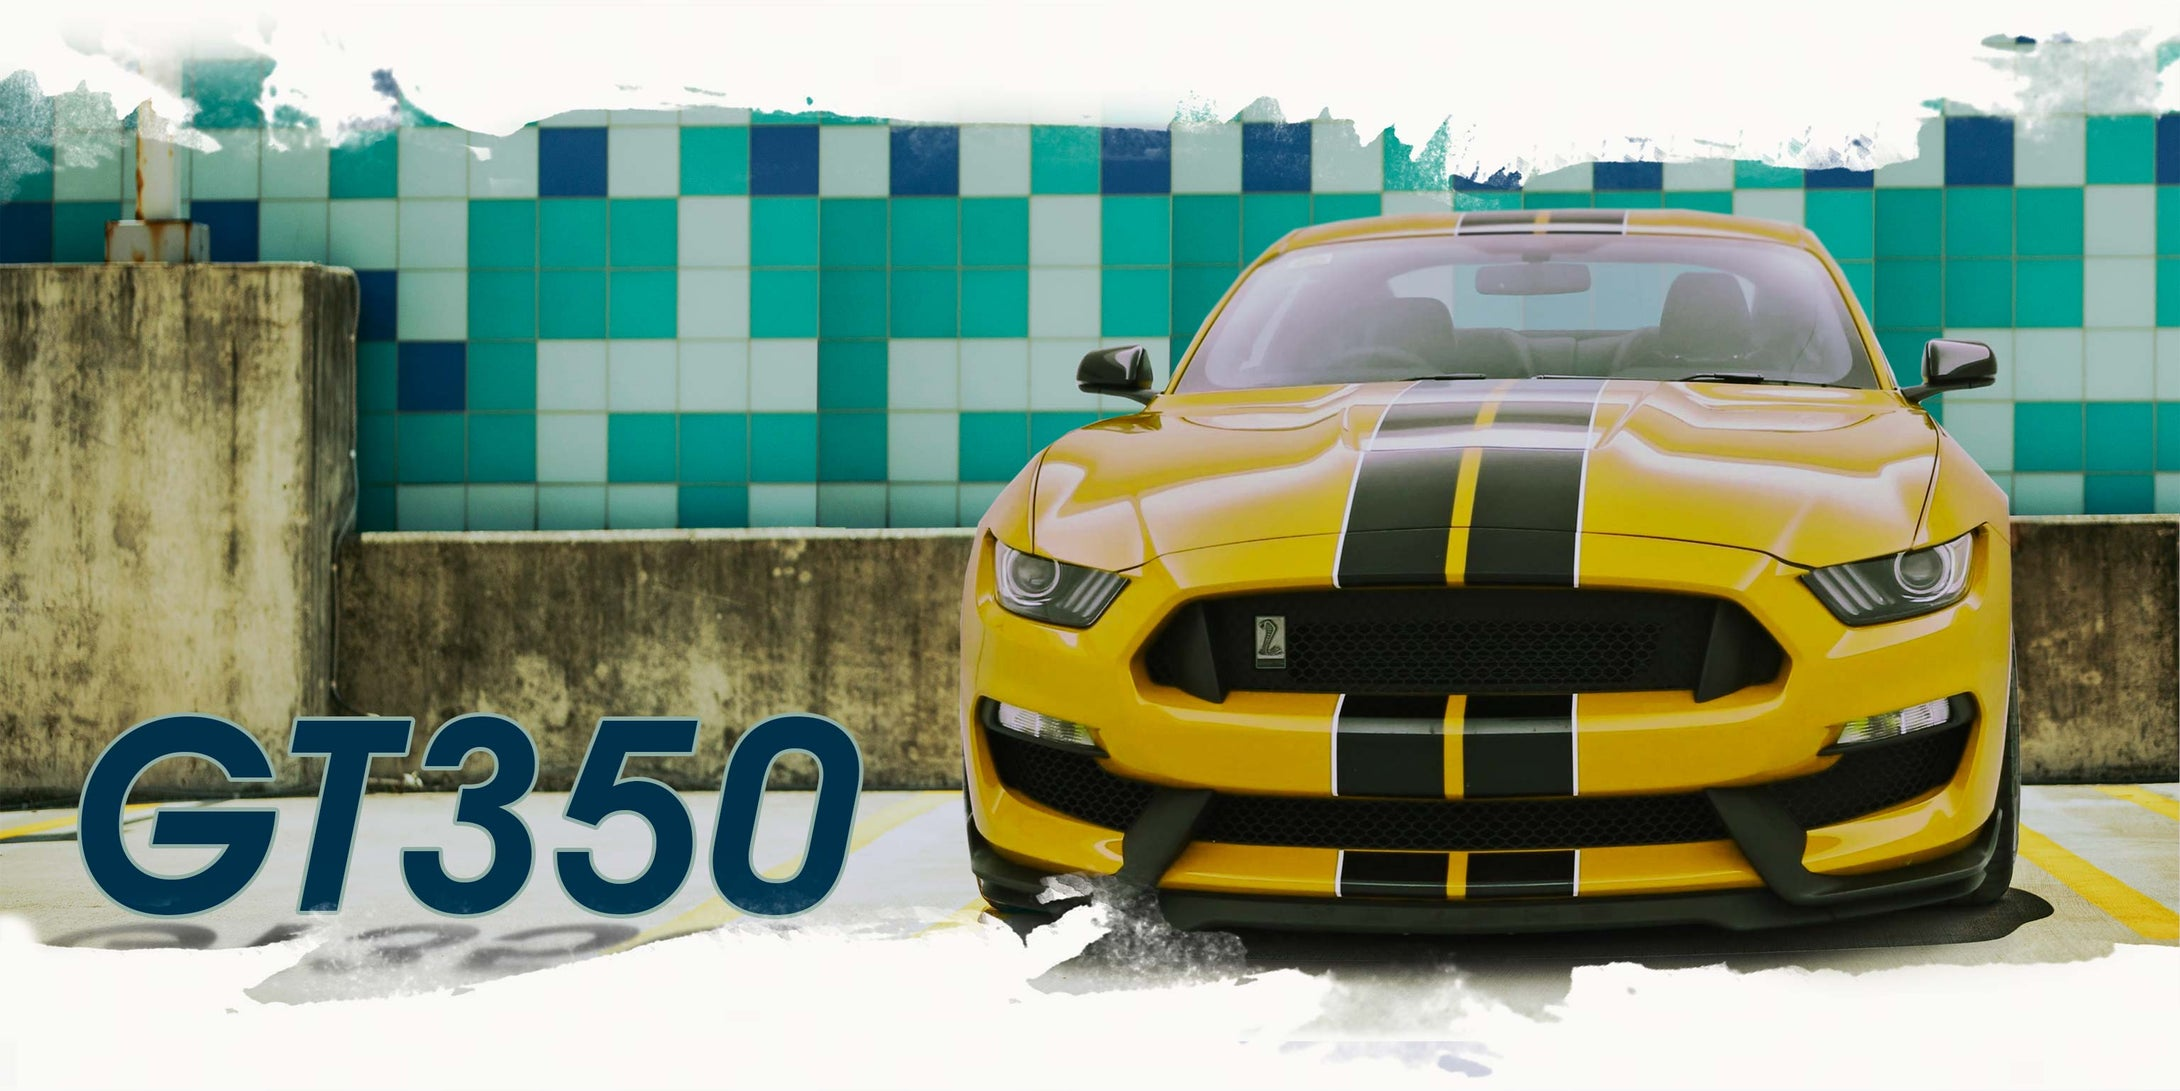 a yellow Shelby GT350 Mustang with glossy black racing stripes with white pinstriping